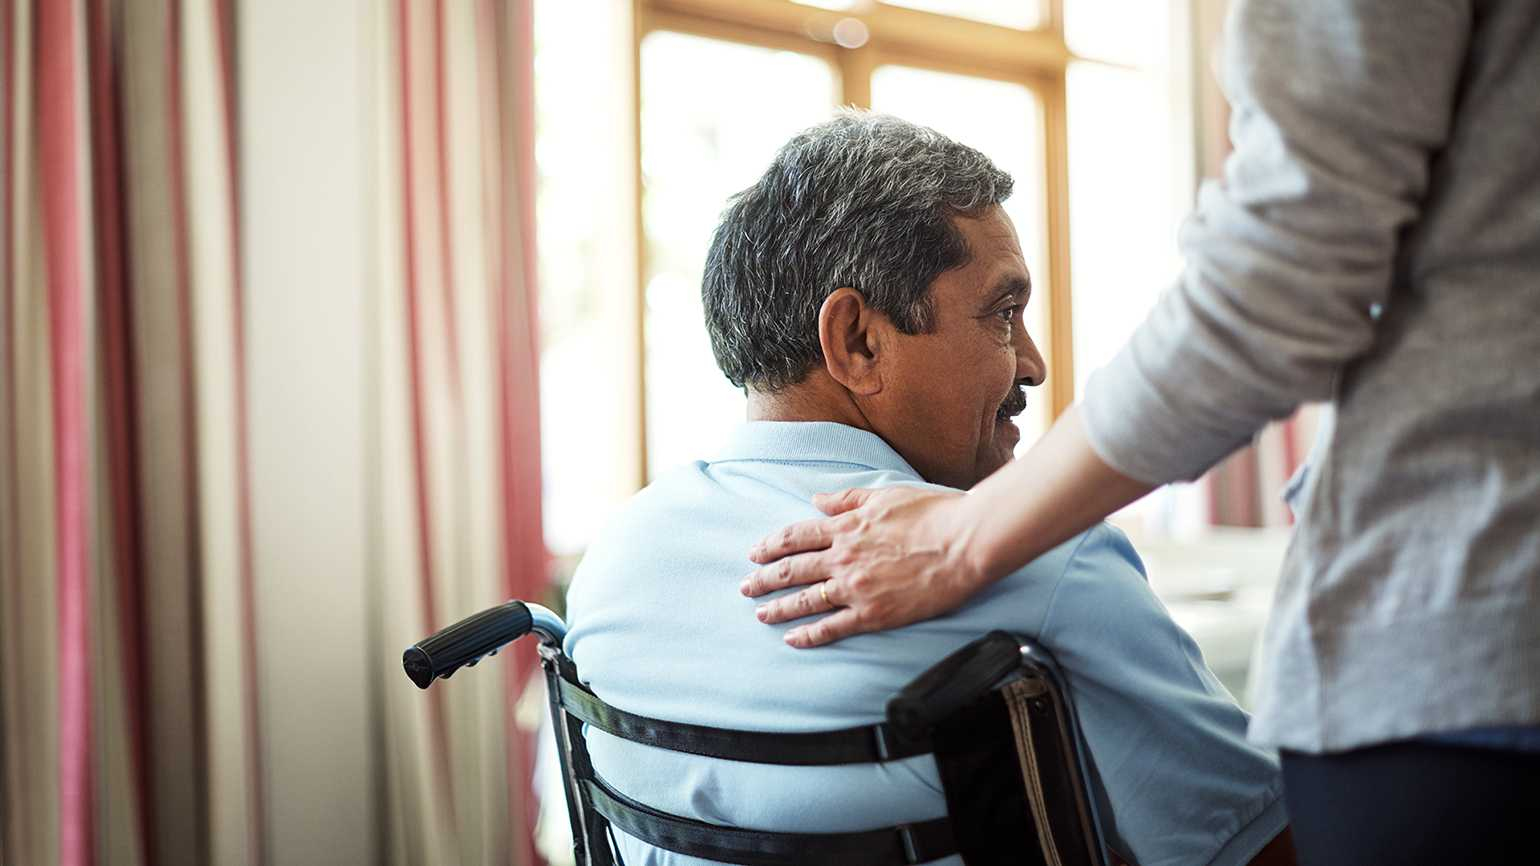 A caregivers looks after a veteran in a wheelchair